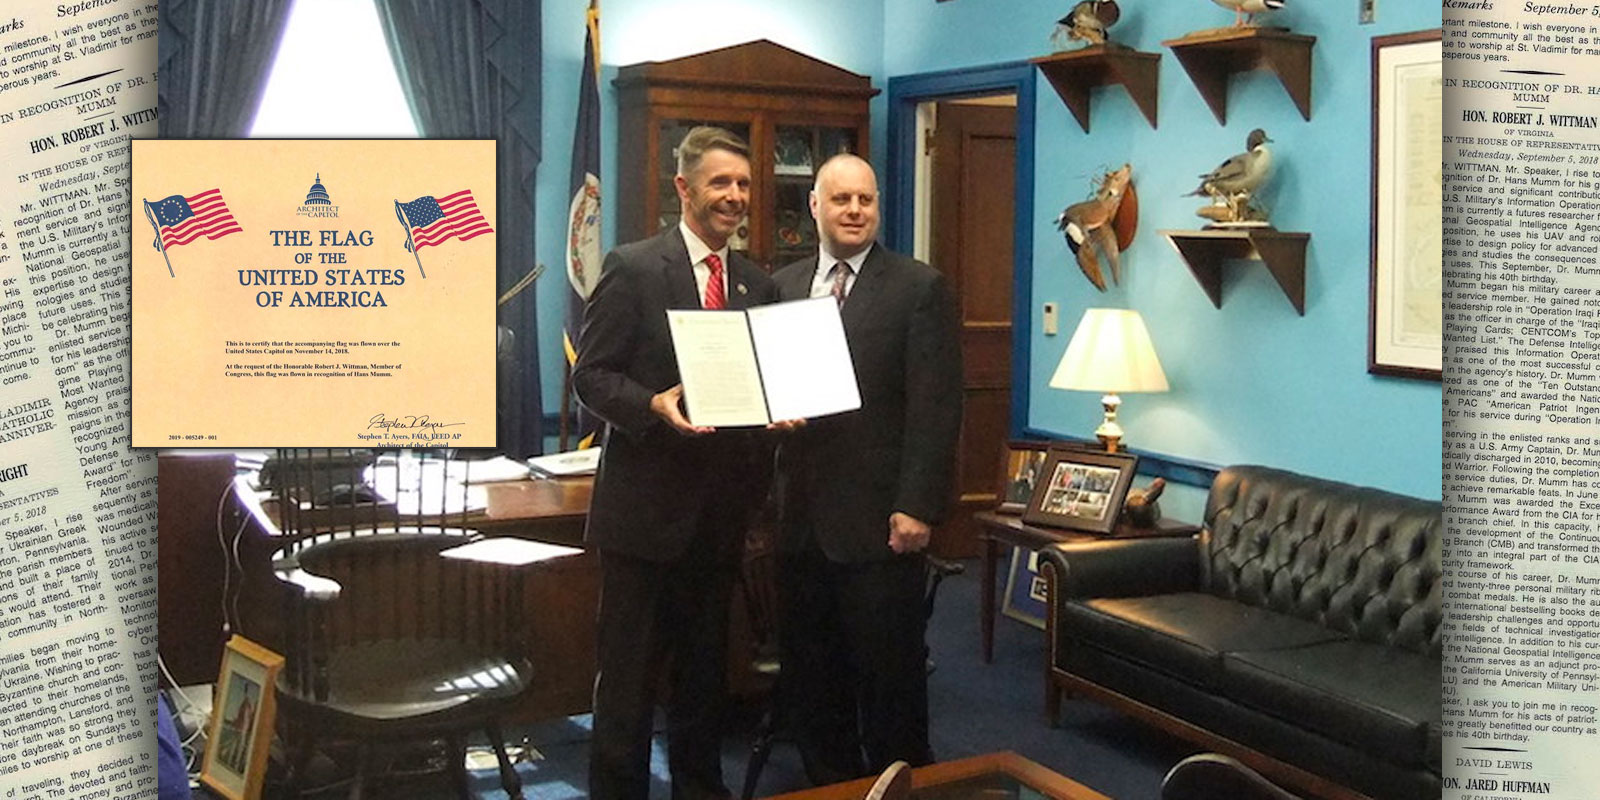 Congressional Record to one of our Nations Heroes, Dr. Hans Mumm